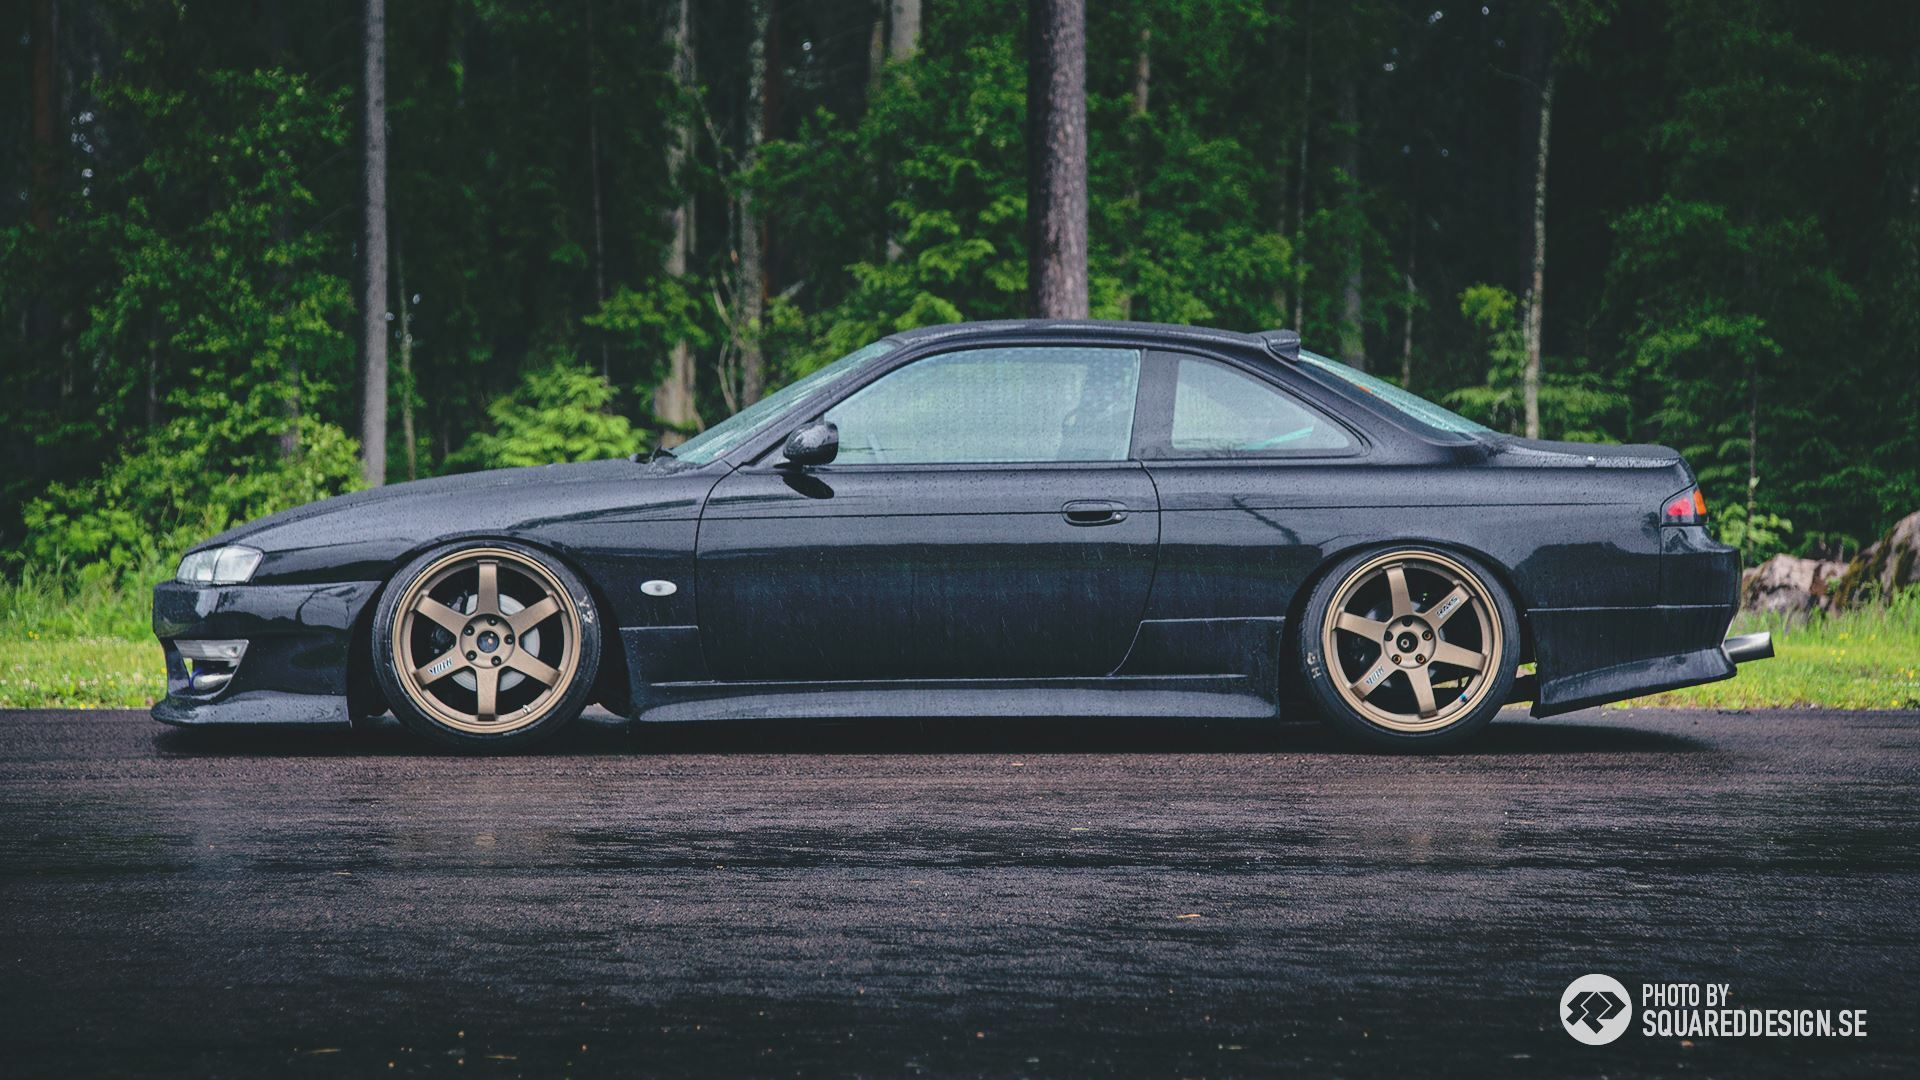 Nissan Silvia S14 HD Wallpaper | 999HDWallpaper | Cars | Pinterest | Hd  Wallpaper, Nissan Silvia And Wallpaper